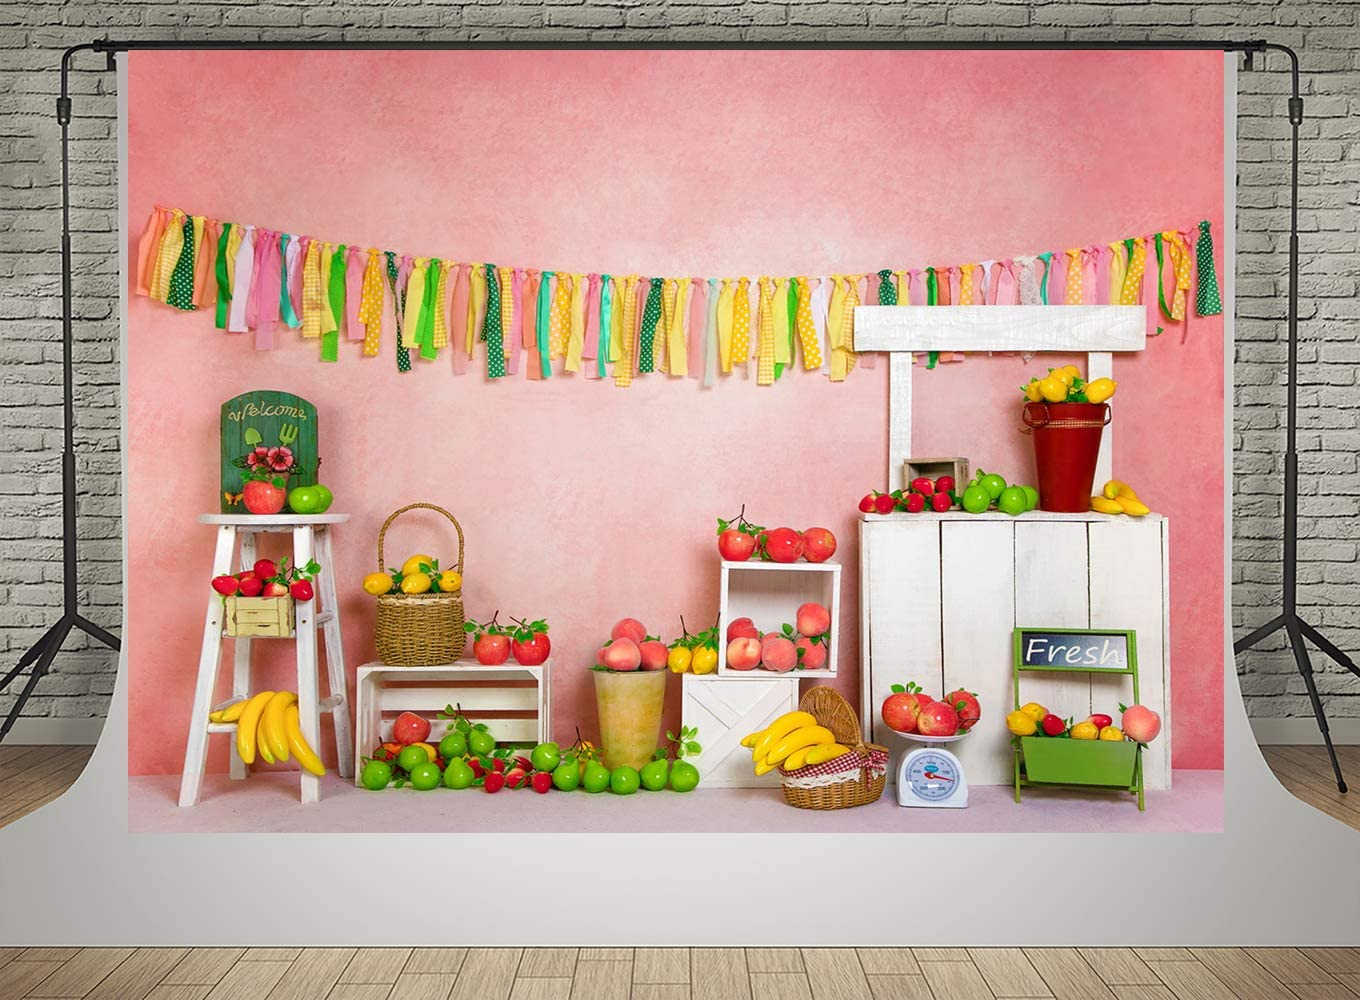 Kate Fruit Shop Apple Lemon Photo Studio Backdrops 7x5ft Pink Wall with Ribbons Decoration Background Birthday Theme Baby Shower Newborn Children Photobooth Props